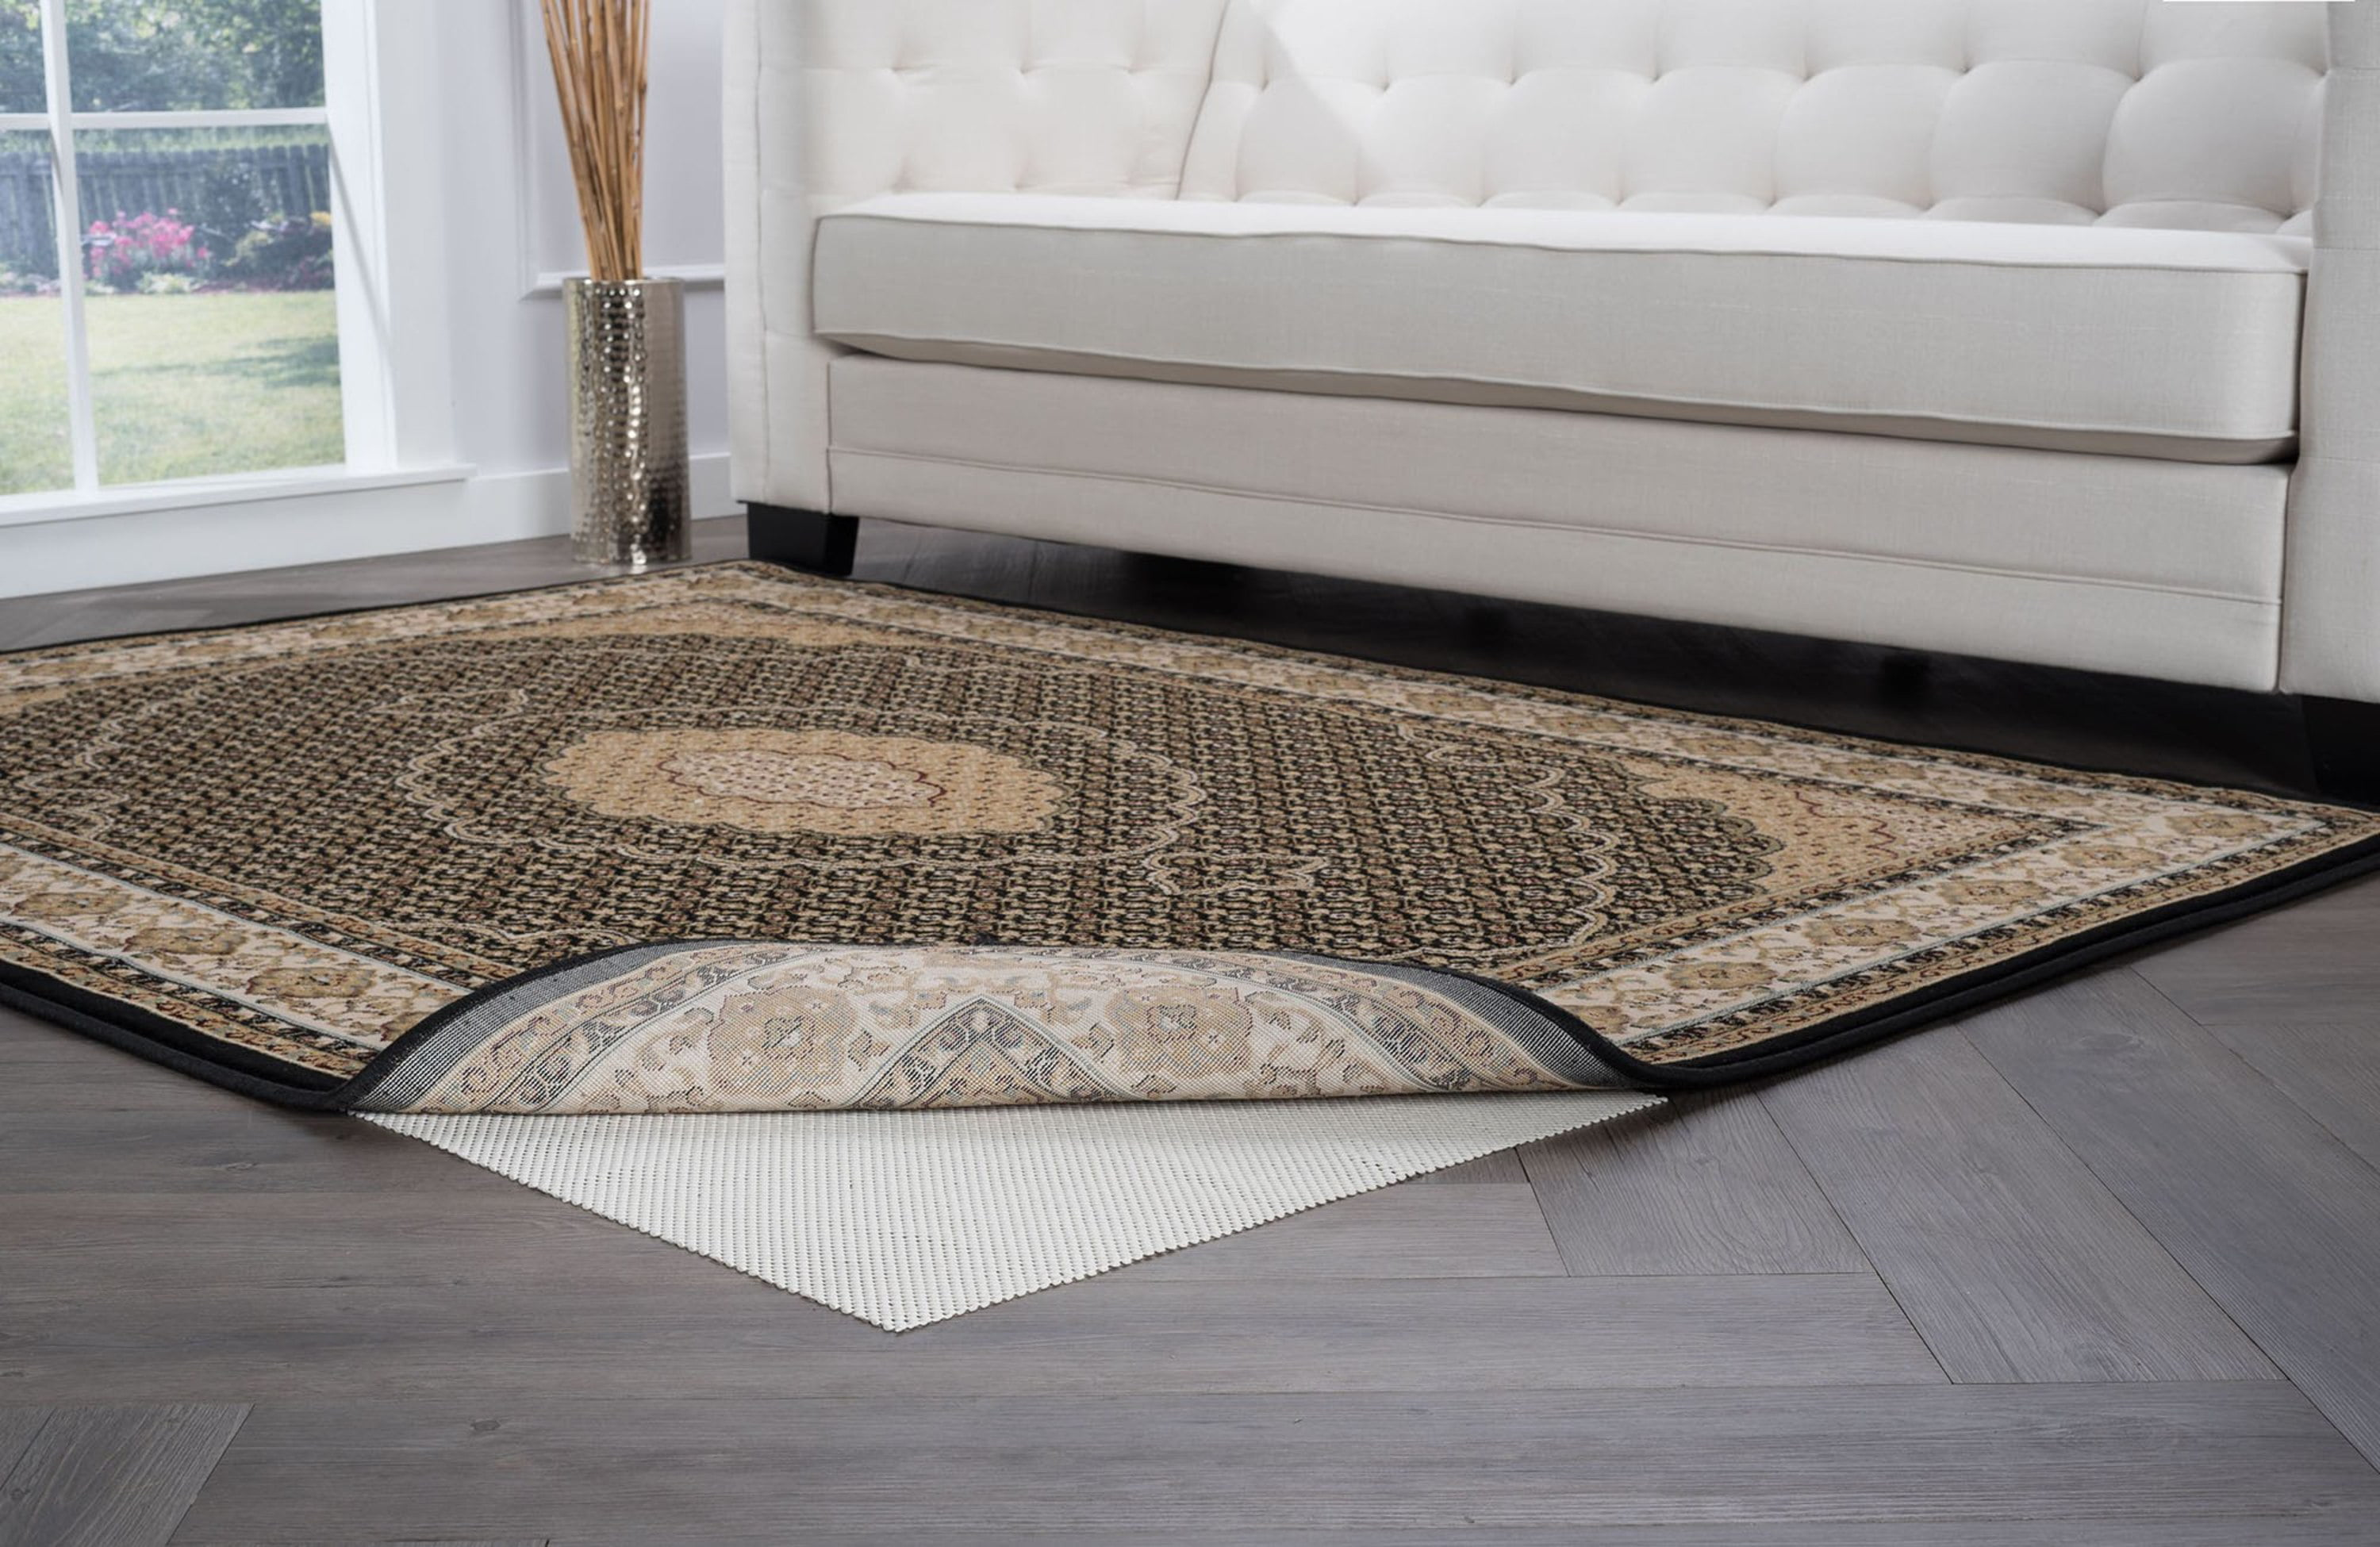 Bliss Rugs Celestial Grip Rug Pad, 5' x 7' by Bliss Rugs